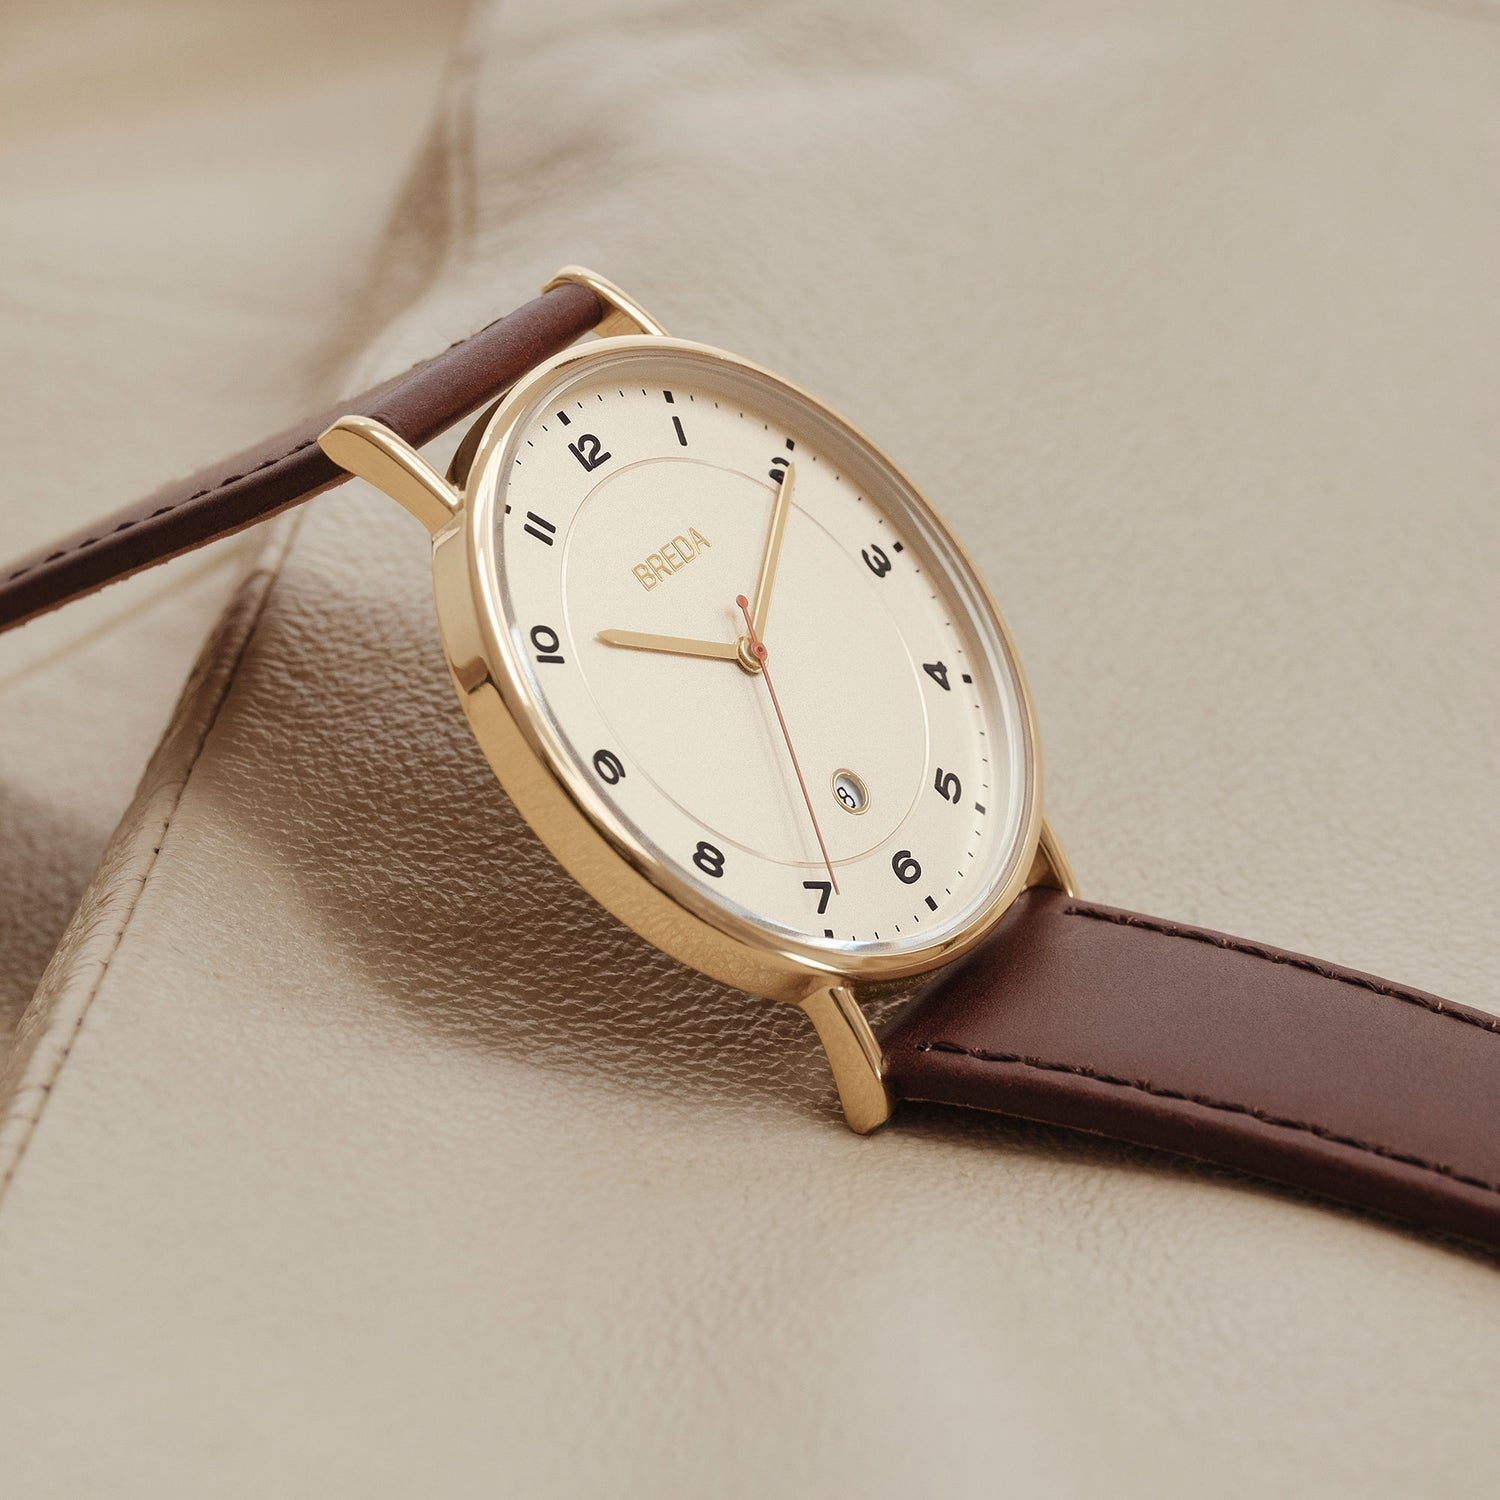 breda-pei-1739c-gold-brown-leather-watch-studio